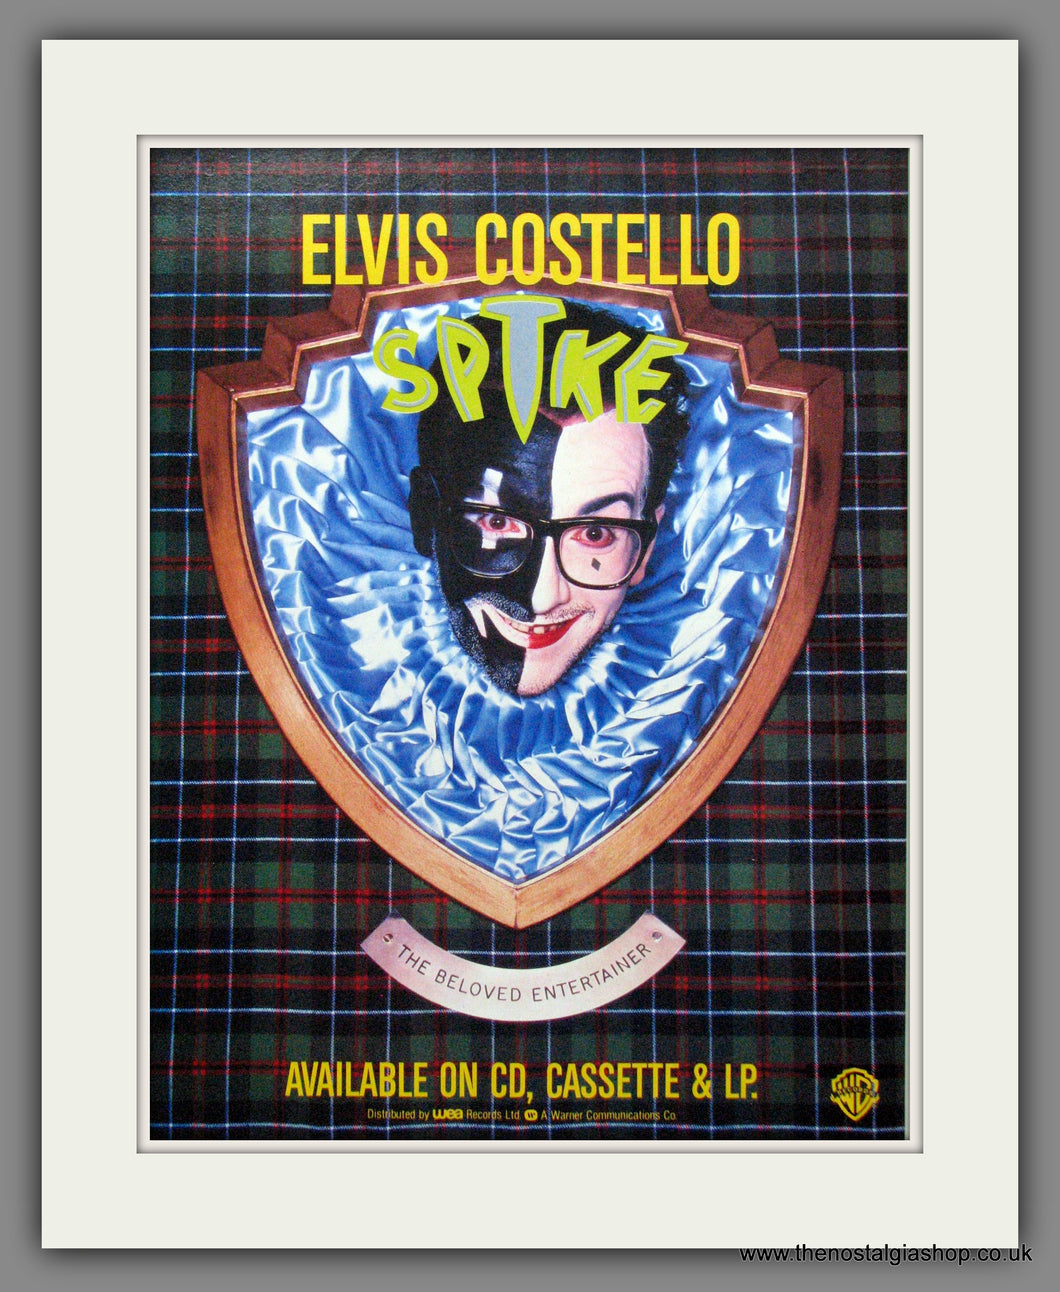 Elvis Costello - Spike. Original Advert 1989 (ref AD50207)